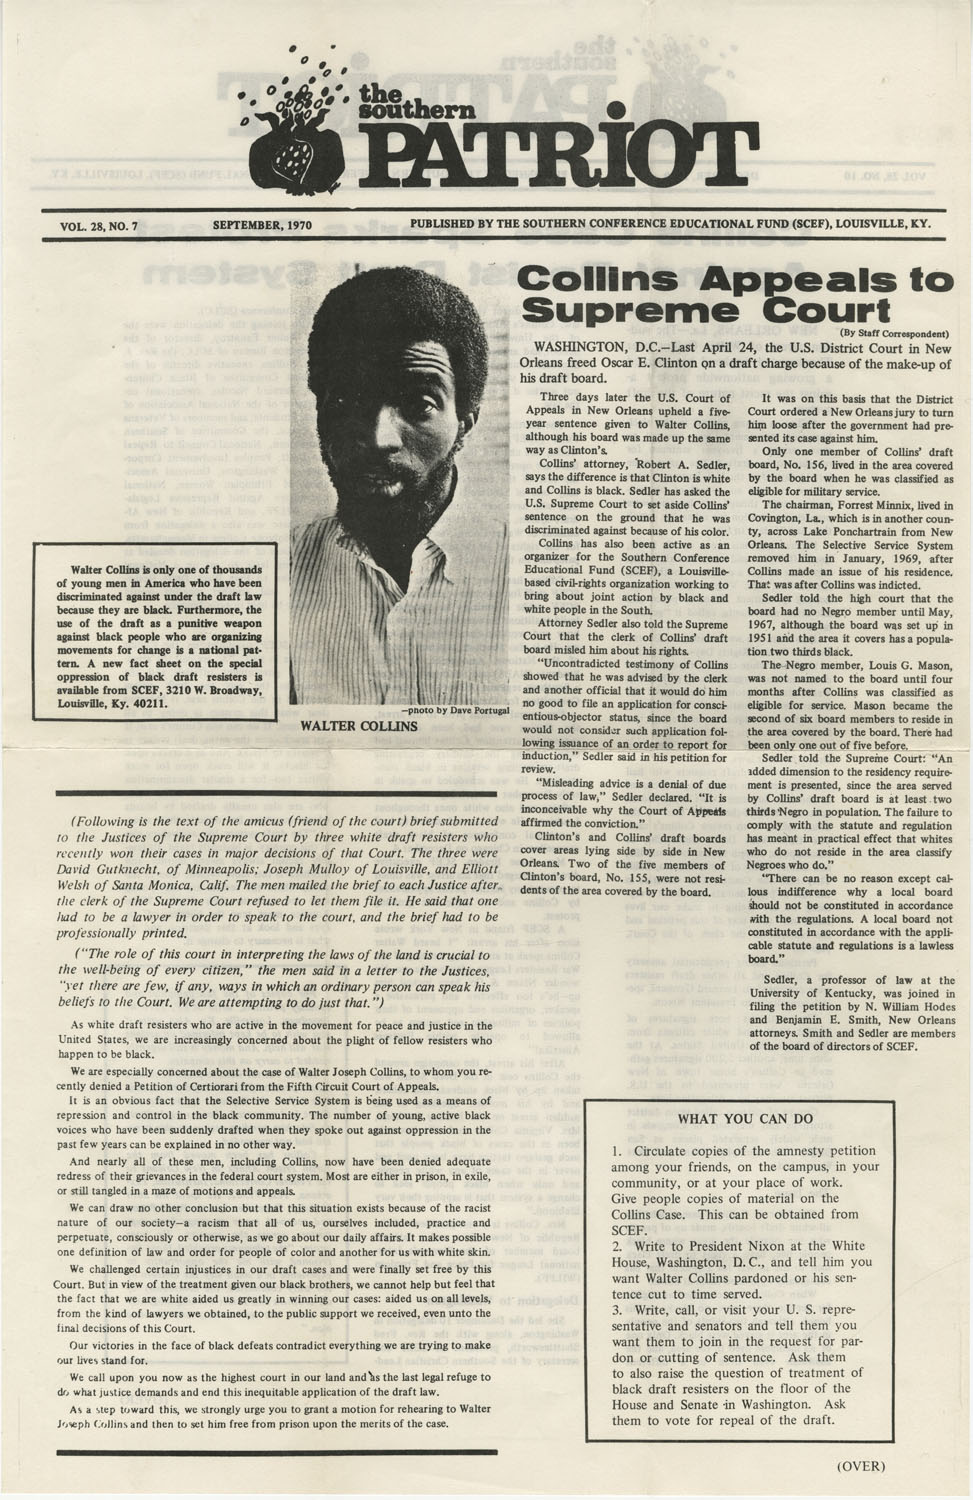 The Southern Patriot Article on Walter Collins, September 1970